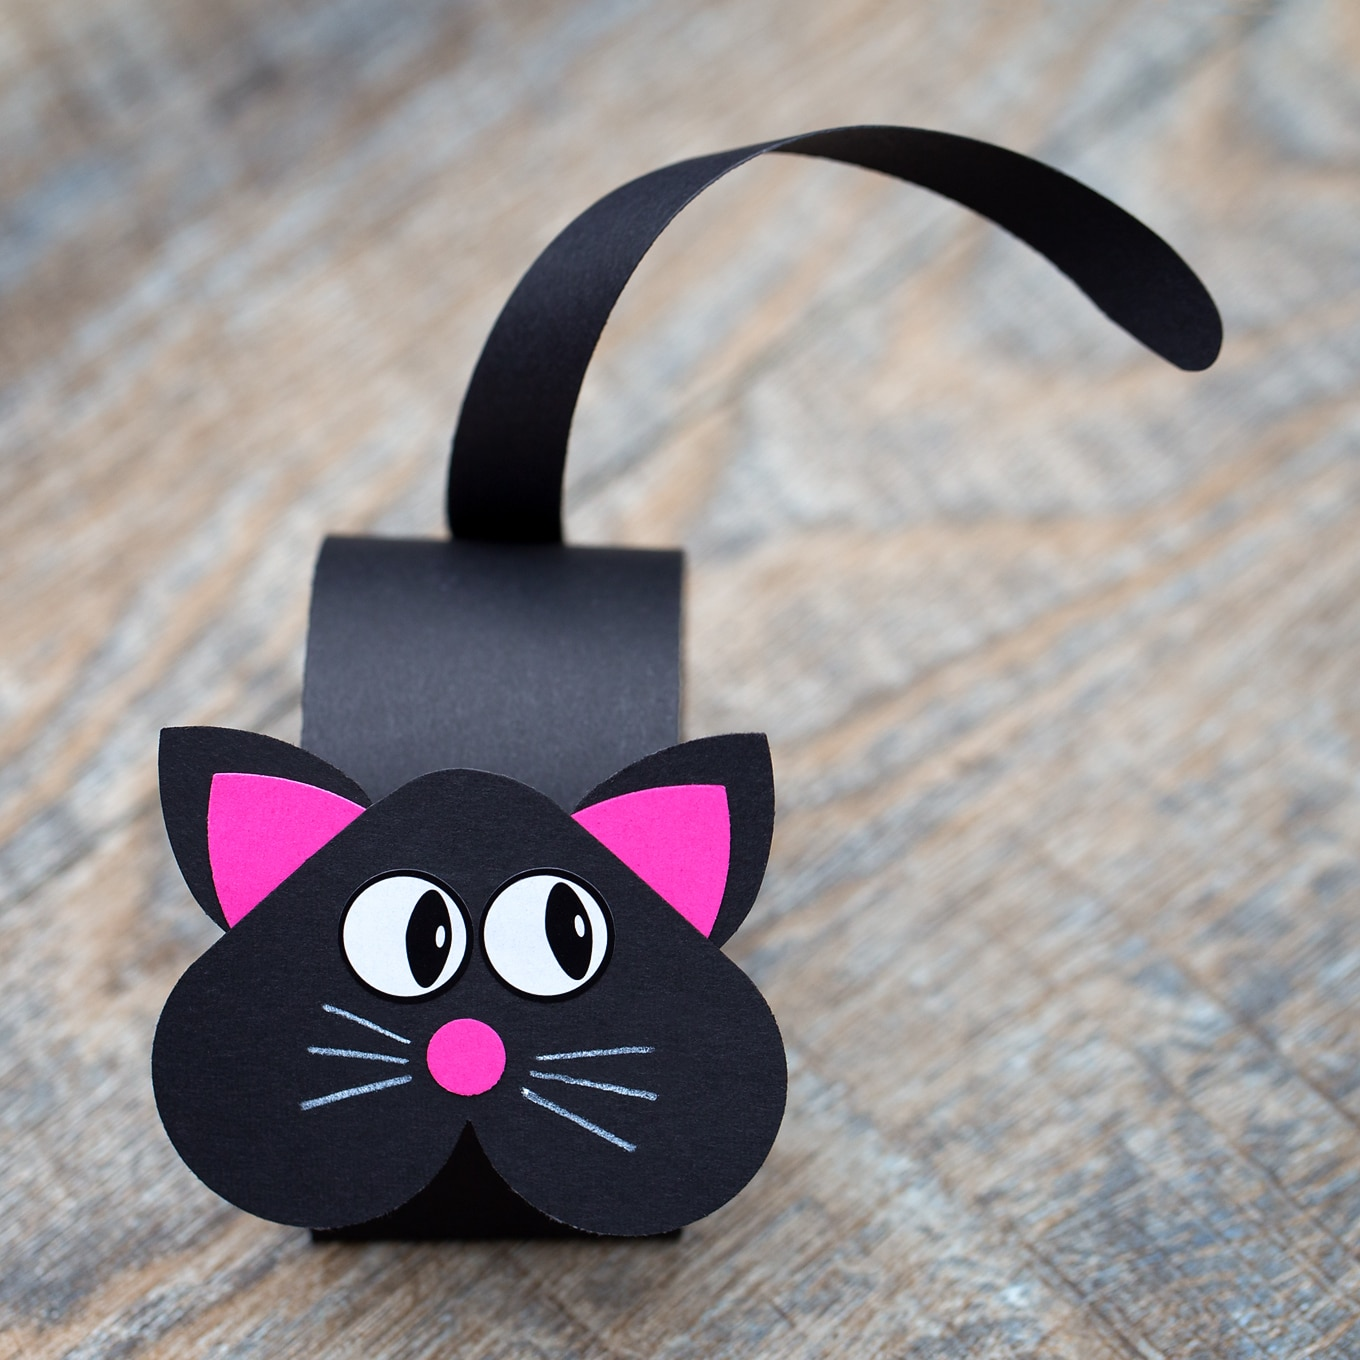 Black Cat Craft for Halloween